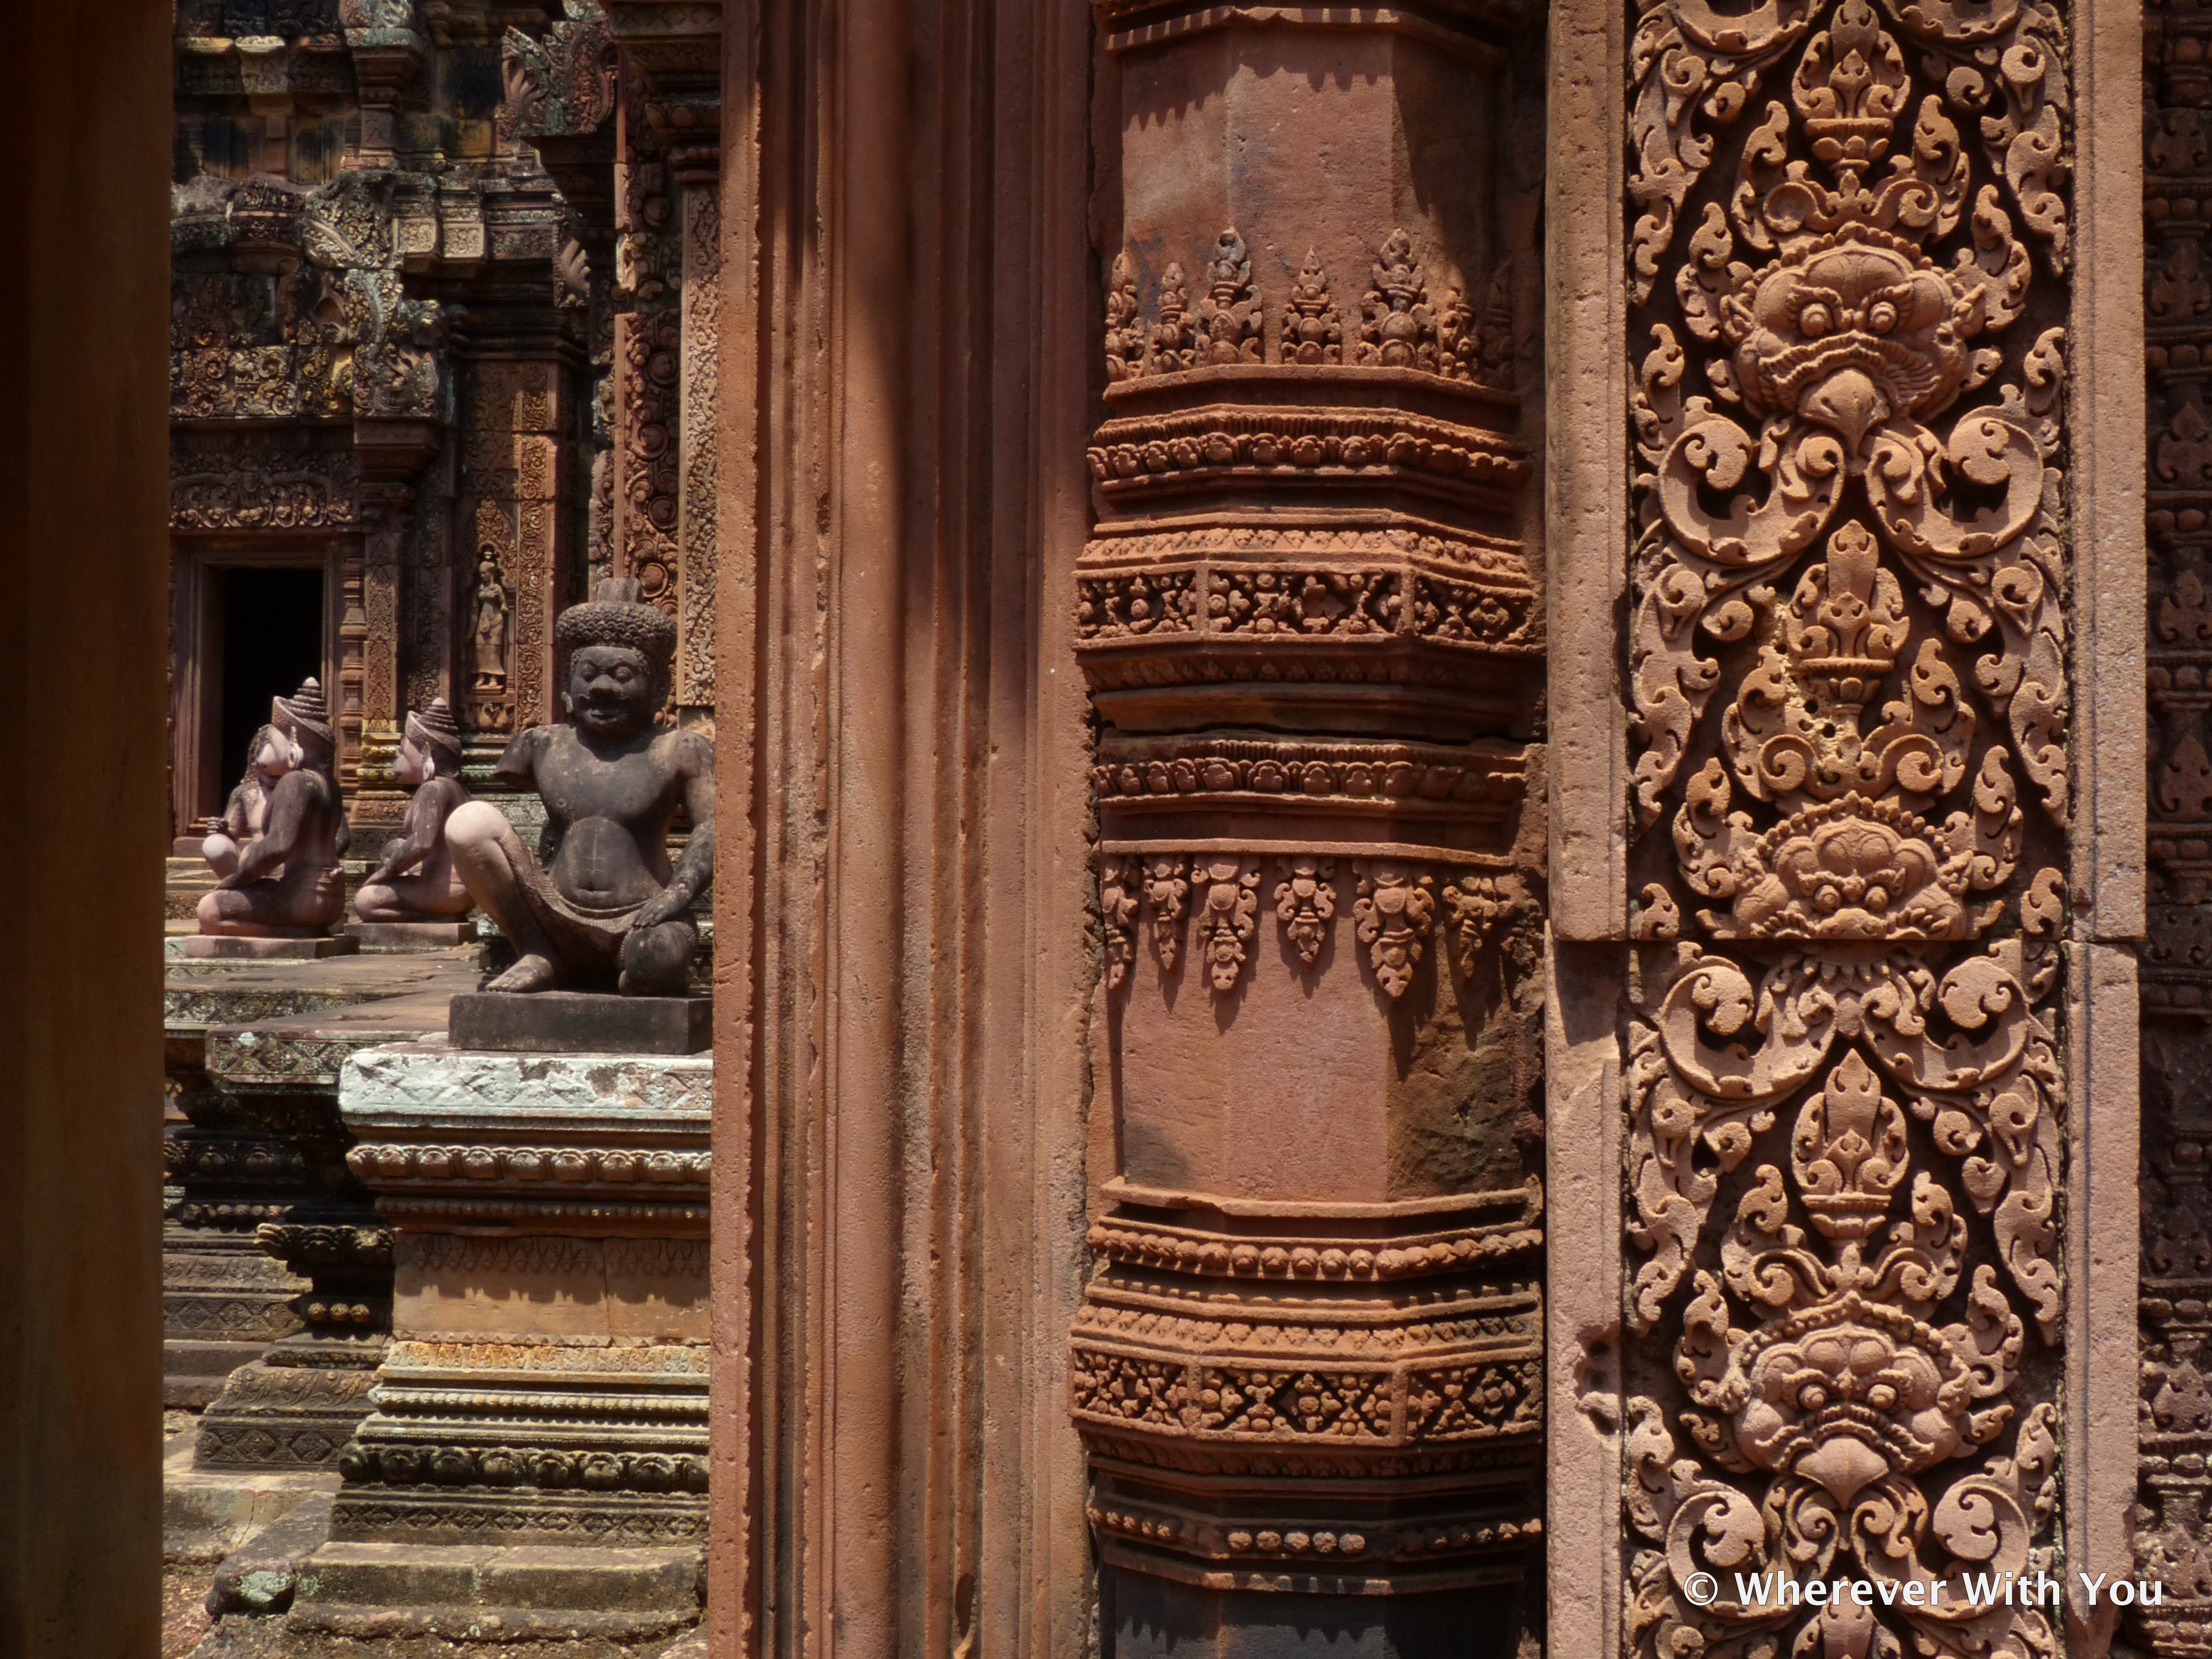 View through a doorway at Banteay Kdei (Citadel of the Women), named for its delicate carvings and pink sandstone.